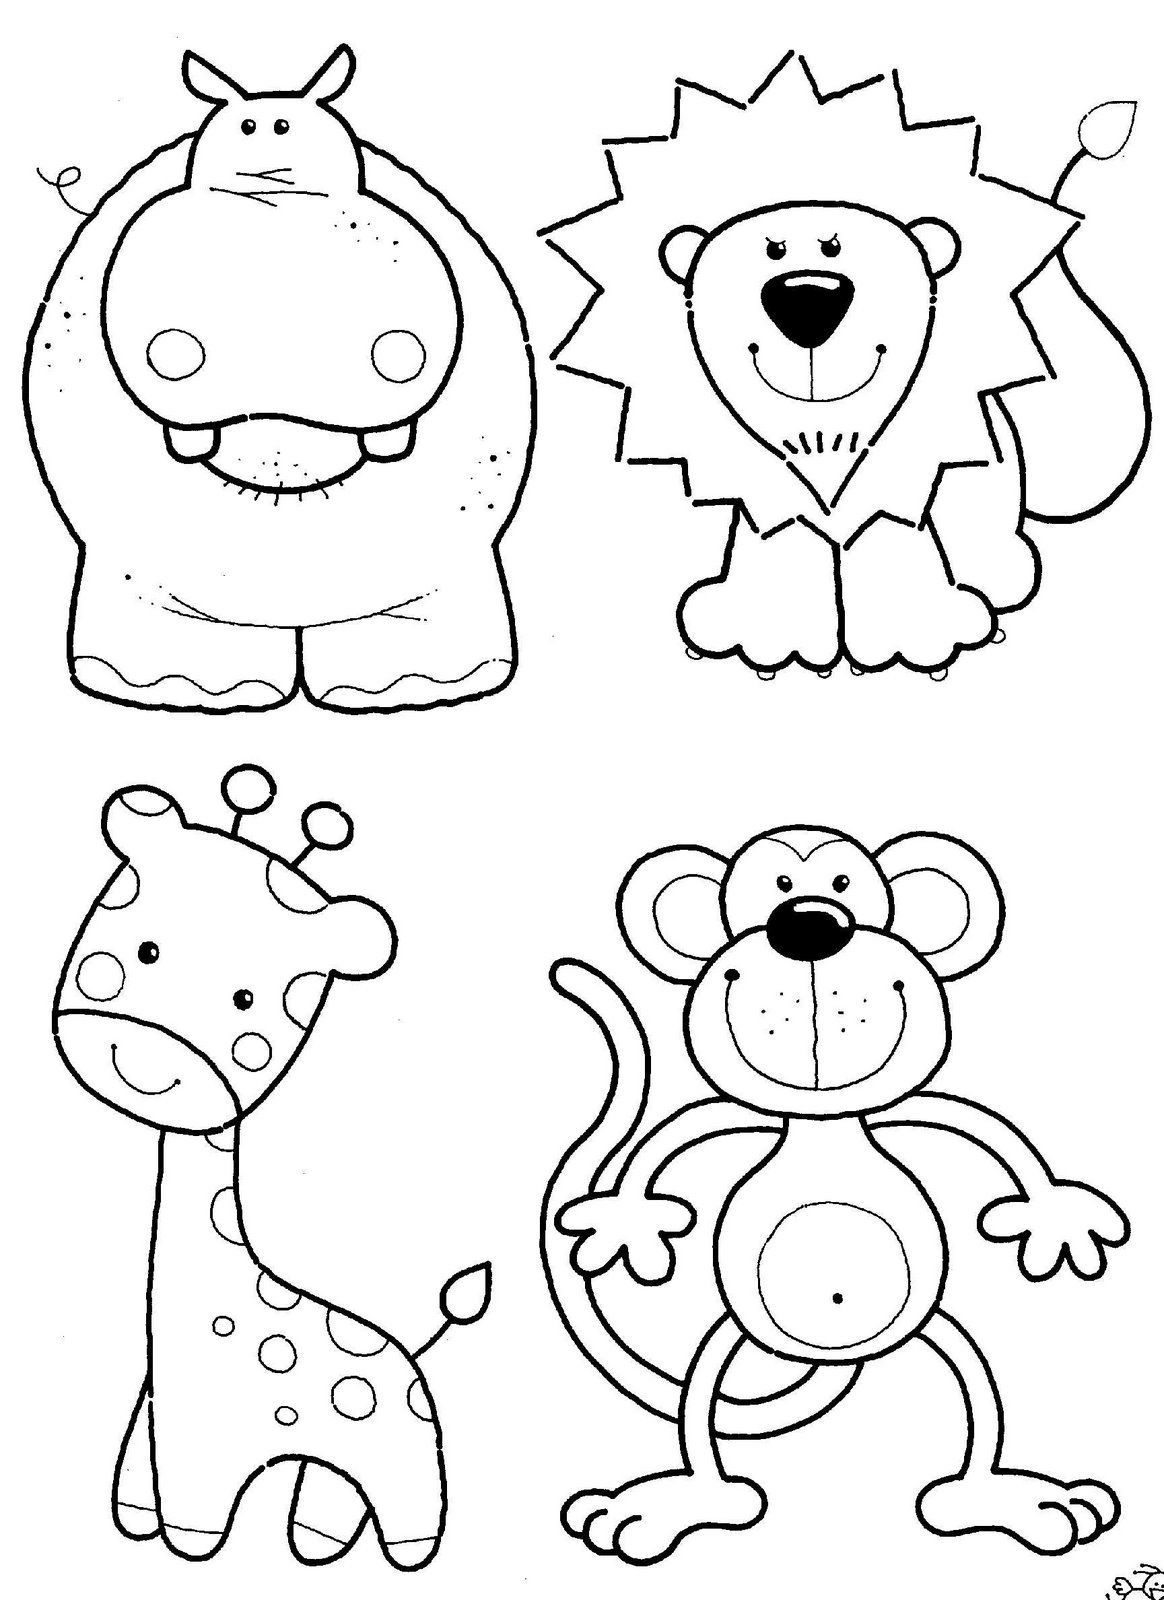 Printable coloring pages jungle - Moldes Patch Colagem Arte Em Tecidos Como Fazer Patch Colagem Animal Coloring Pagescoloring